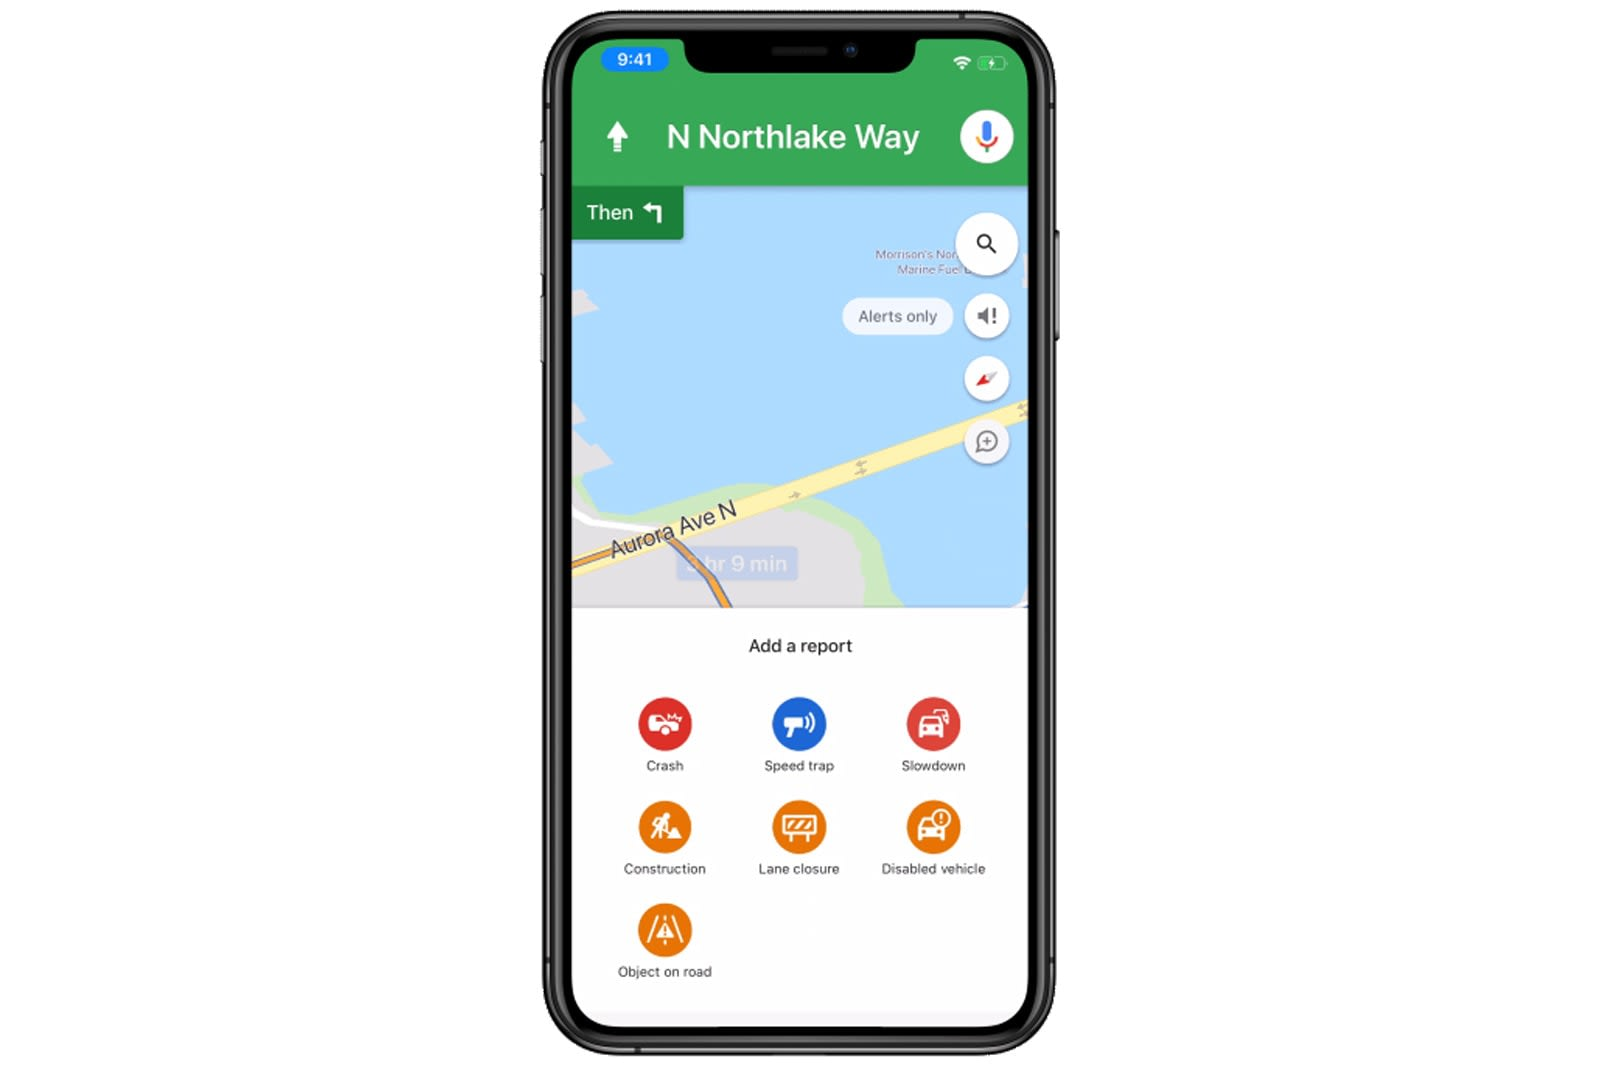 You can report traffic snarls in Google Maps for iOS | Engadget Giigke Maps on aeronautical maps, yahoo! maps, search maps, google map maker, google search, bing maps, google mars, google moon, ipad maps, google docs, android maps, amazon fire phone maps, route planning software, gppgle maps, satellite map images with missing or unclear data, google voice, stanford university maps, googie maps, google sky, google goggles, goolge maps, googlr maps, iphone maps, topographic maps, msn maps, road map usa states maps, web mapping, google translate, microsoft maps, waze maps, gogole maps, google chrome, aerial maps, online maps,